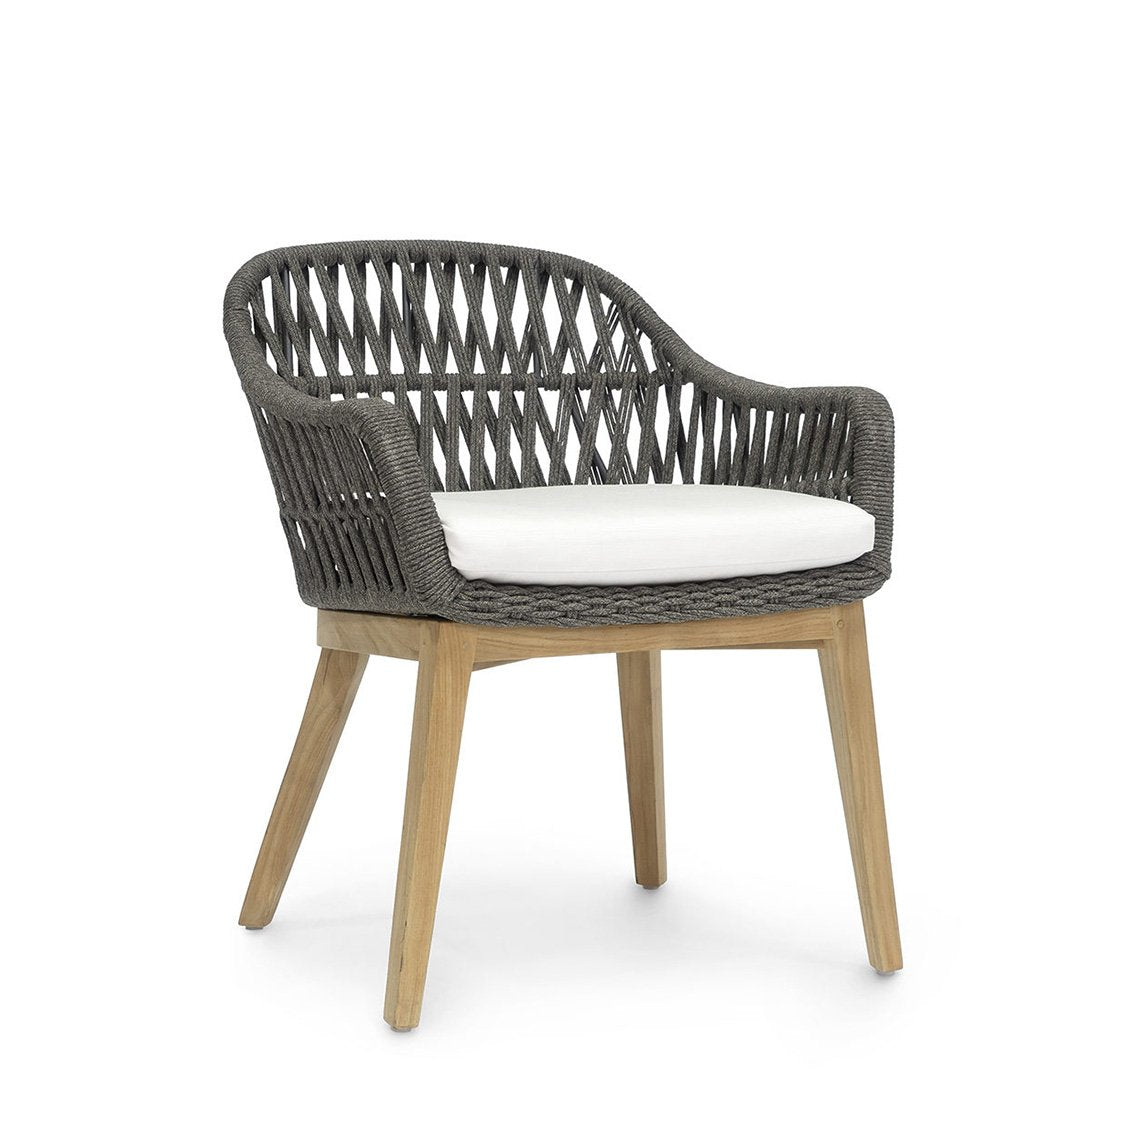 Napoli Outdoor Arm Chair